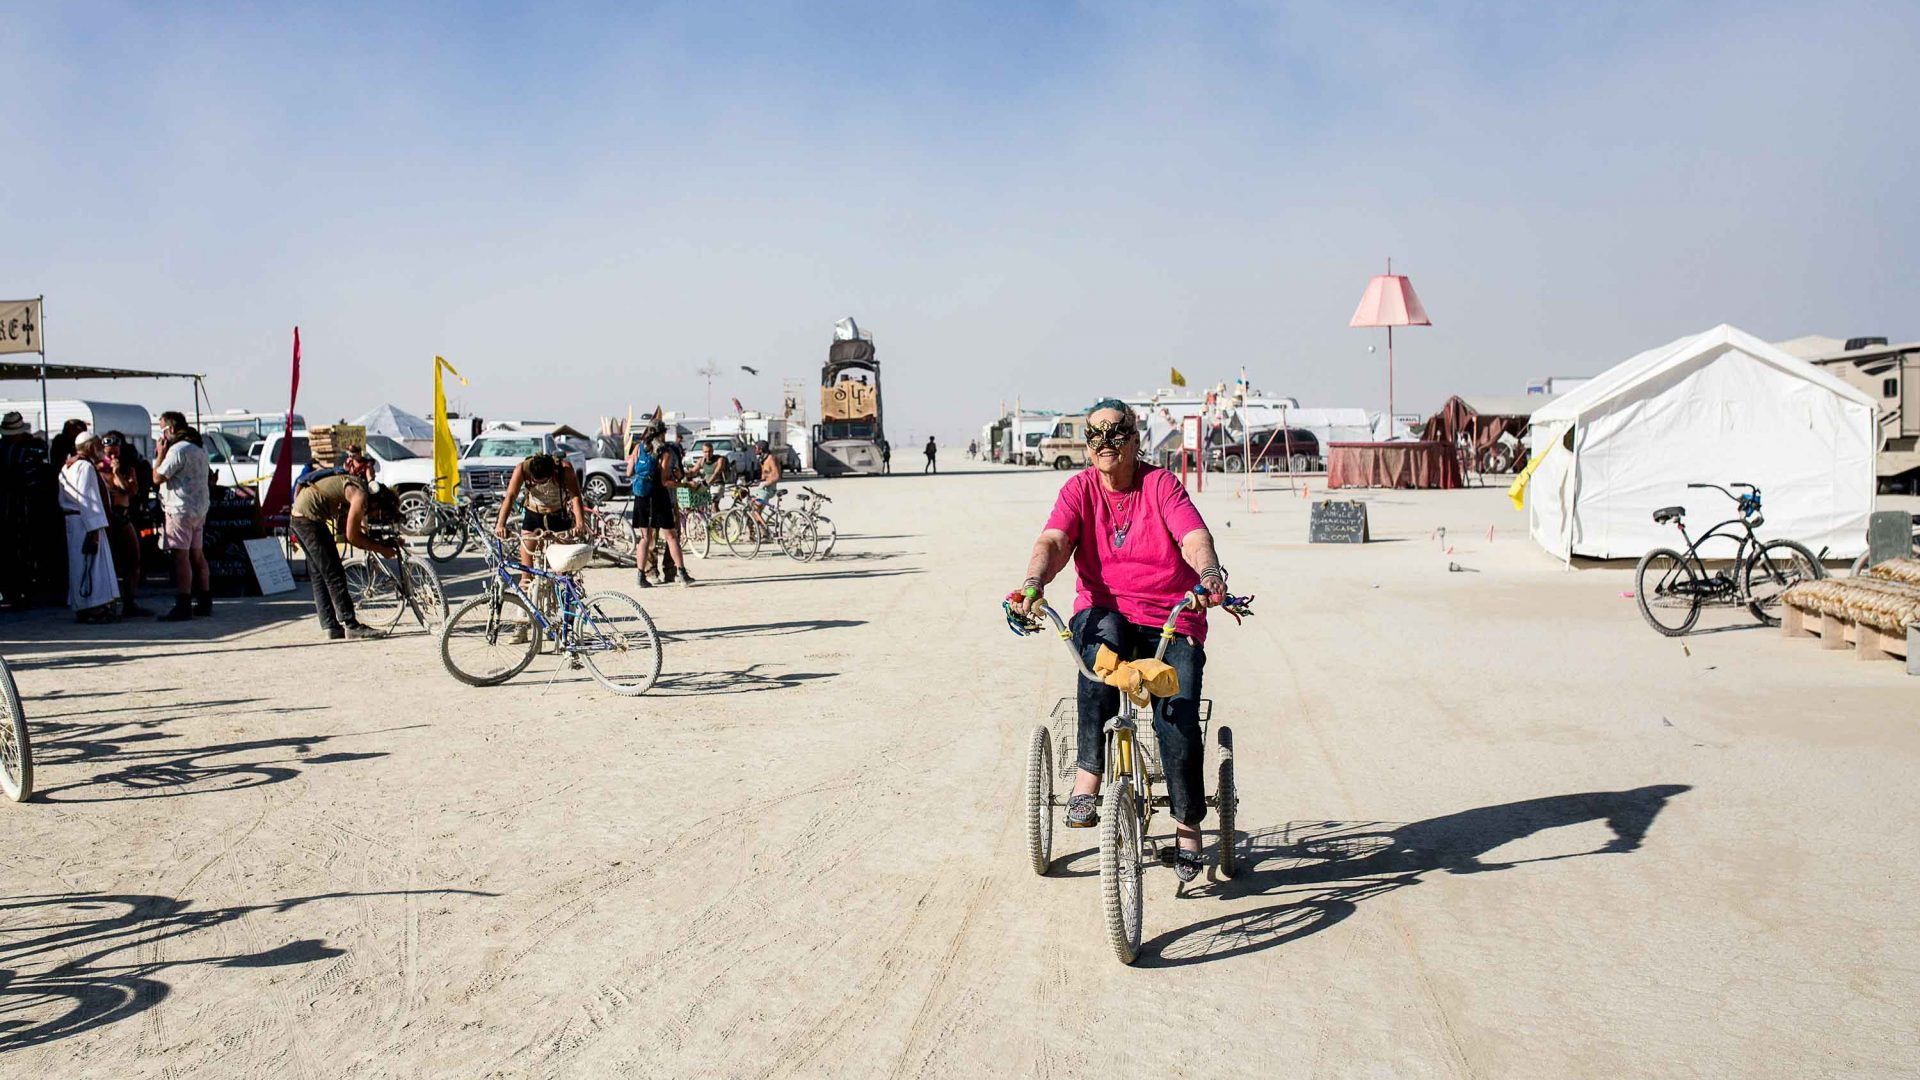 Carolyn Monroe, 81, getting around on her tricycle at Burning Man.